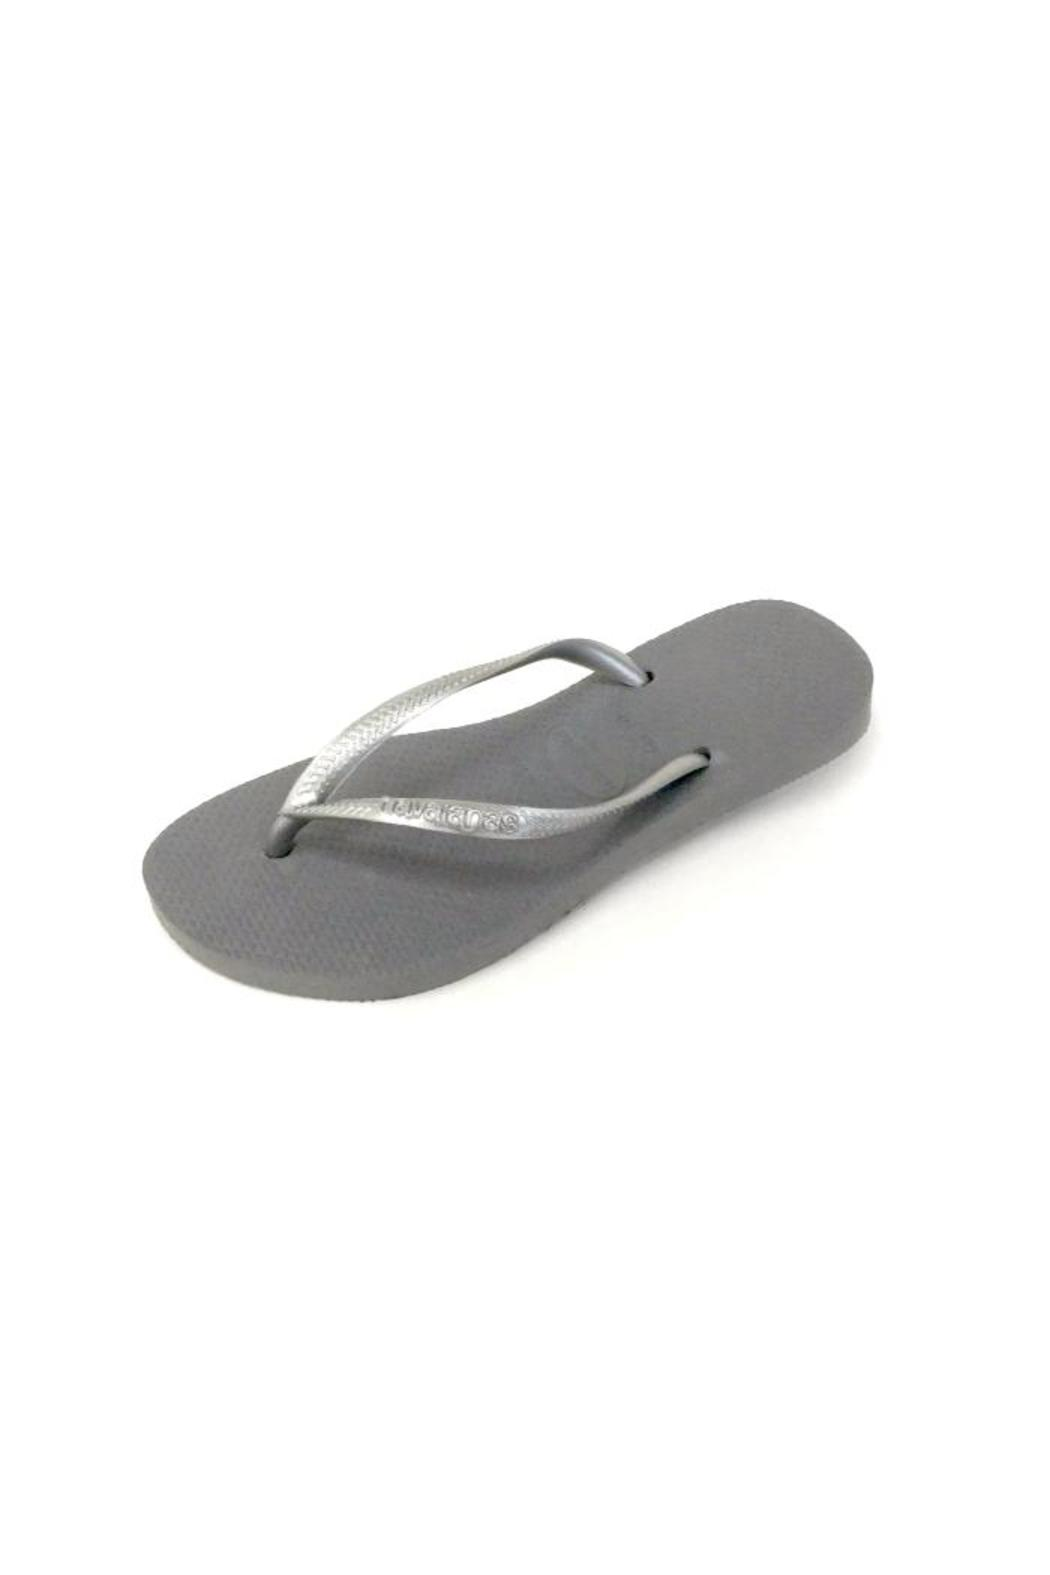 7d45e775a552a1 Havaianas Havaiana Slim Gray from Santa Monica by Twist — Shoptiques